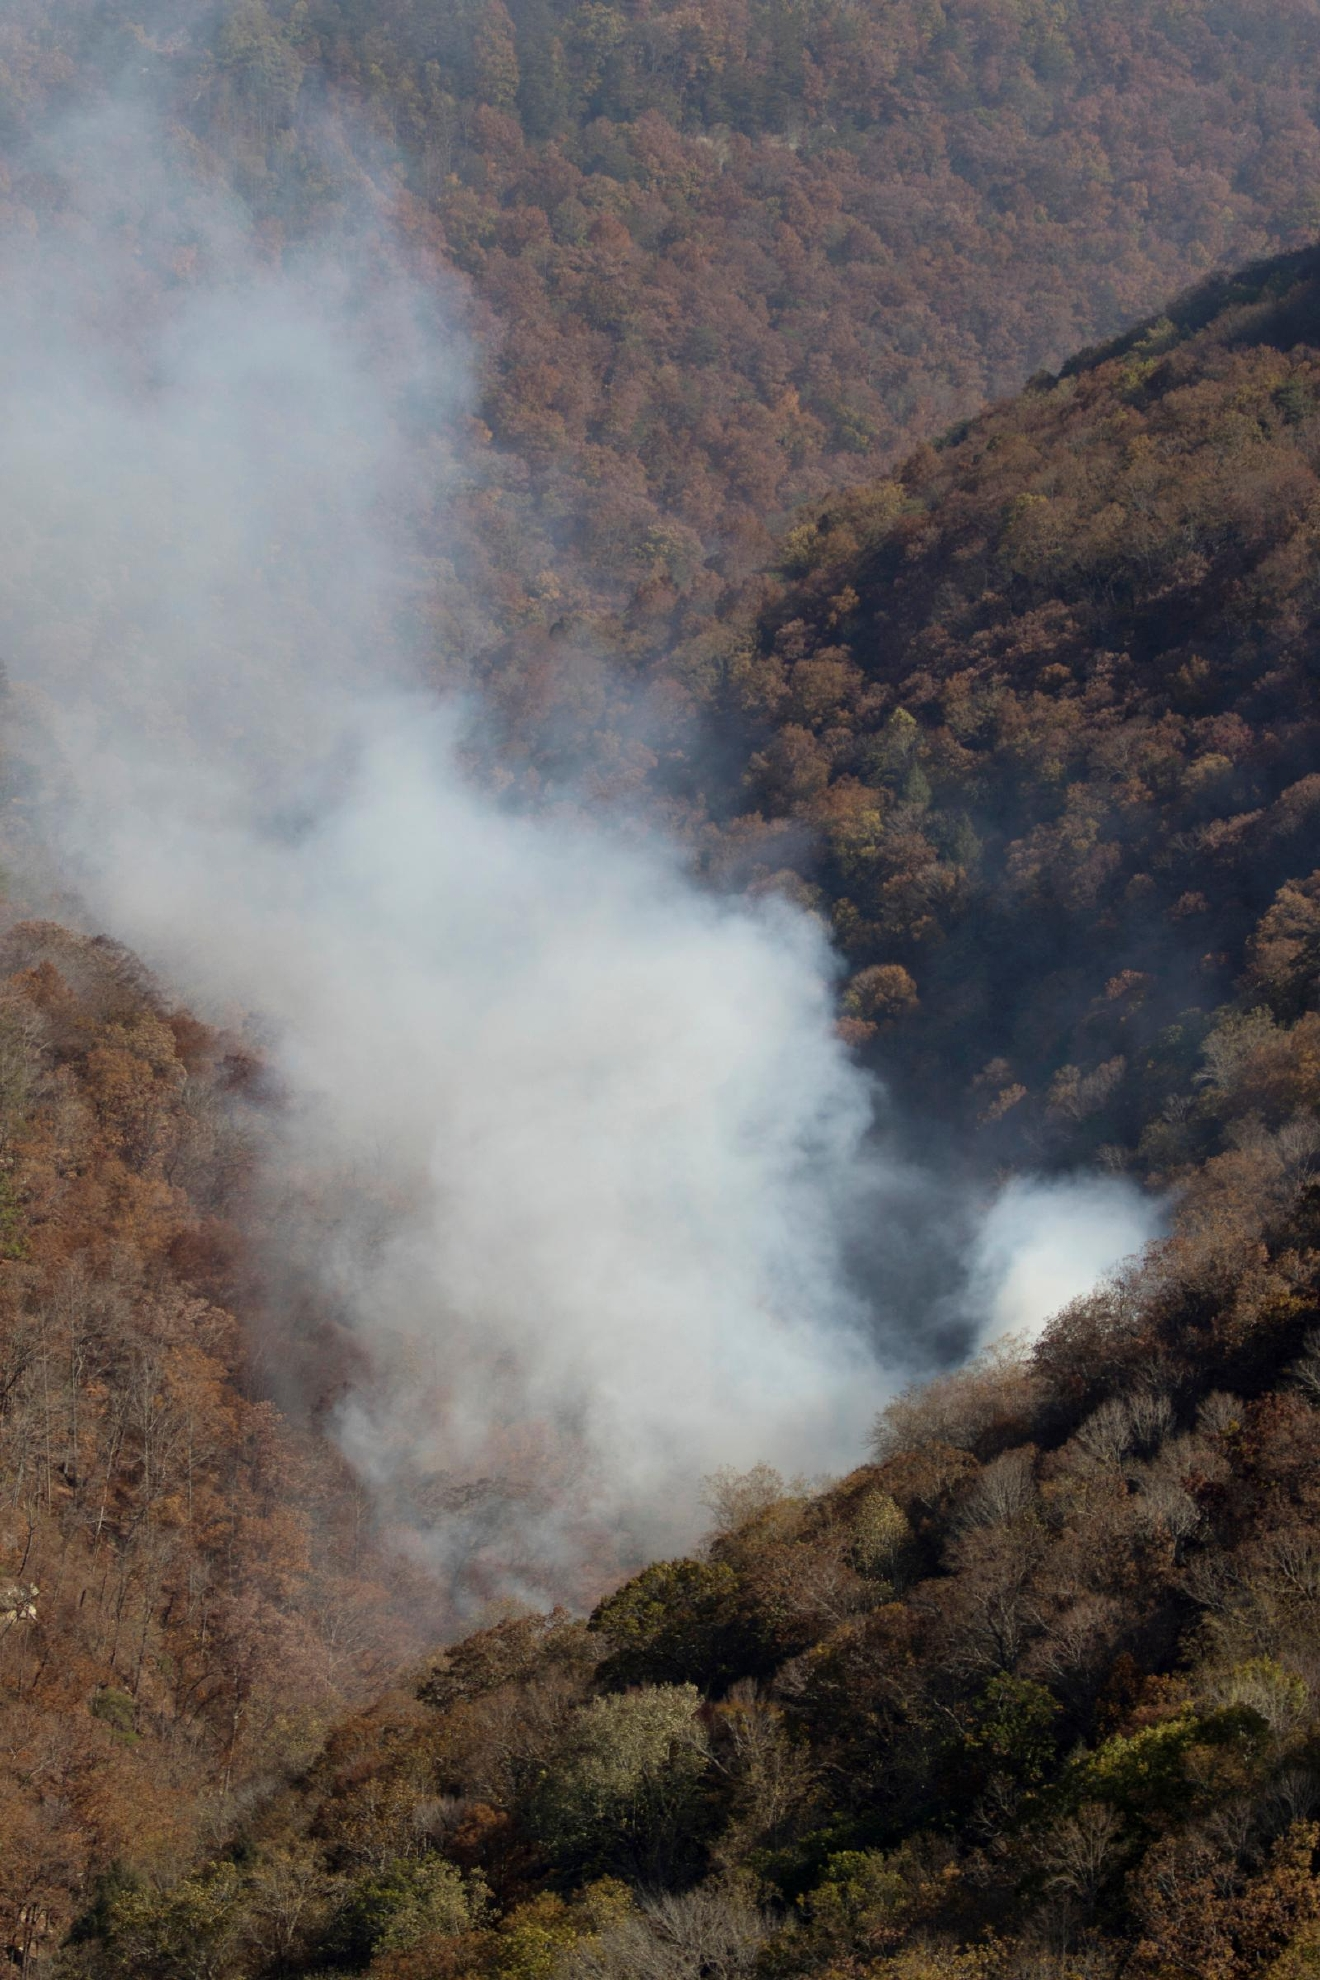 A wildfire burns in the North Chickamauga Creek Gorge along the Flipper Bend area of Signal Mountain, Tenn., on Wednesday, Nov. 9, 2016. Wildfires burning across the South have created a smoky haze over metro Atlanta and prompted a public health advisory in Kentucky, and the forests are expected to continue burning for days as flaming leaves fall to the ground and spread the flames. Other fires were burning in parts of Alabama, North Carolina and Tennessee. (Dan Henry/Chattanooga Times Free Press via AP)